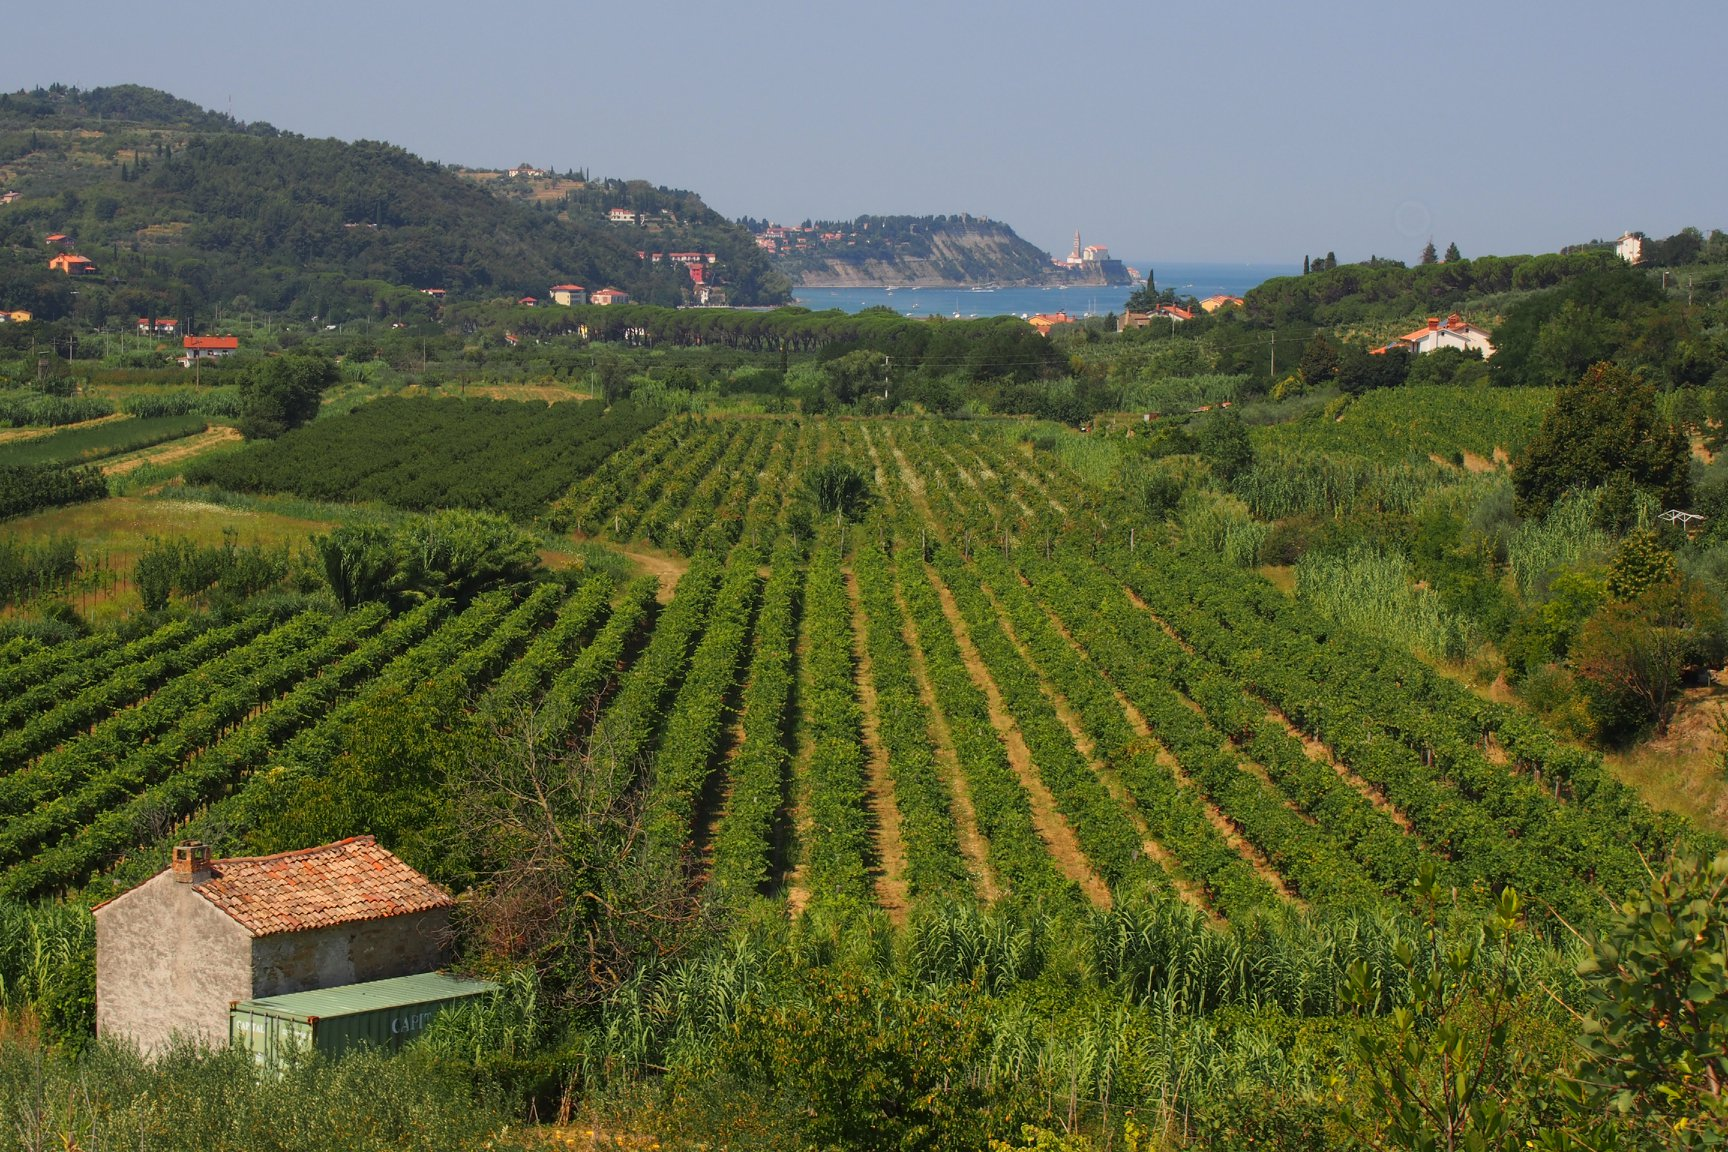 Vineyards on the coast of Slovenia